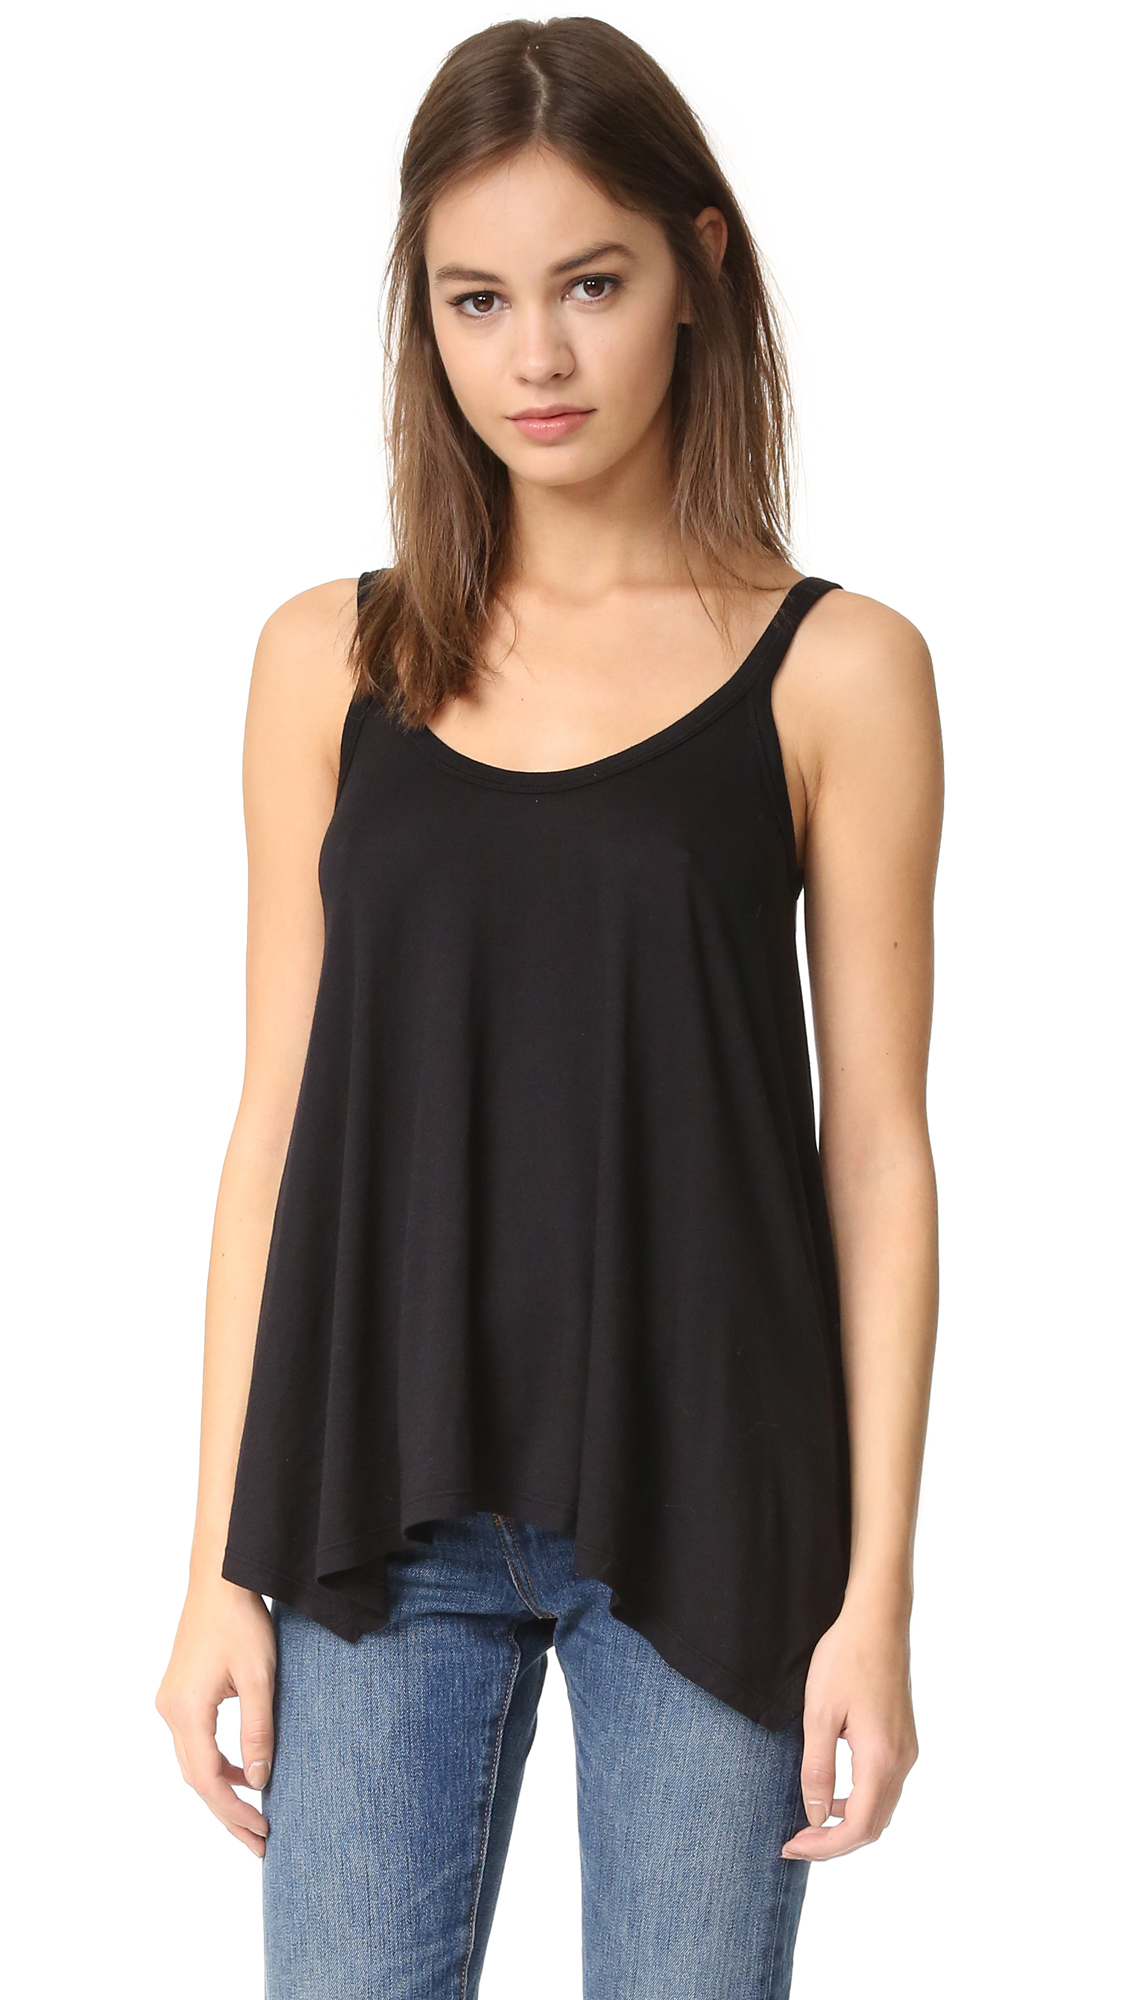 Splendid Light & Fashionable Tank - Black